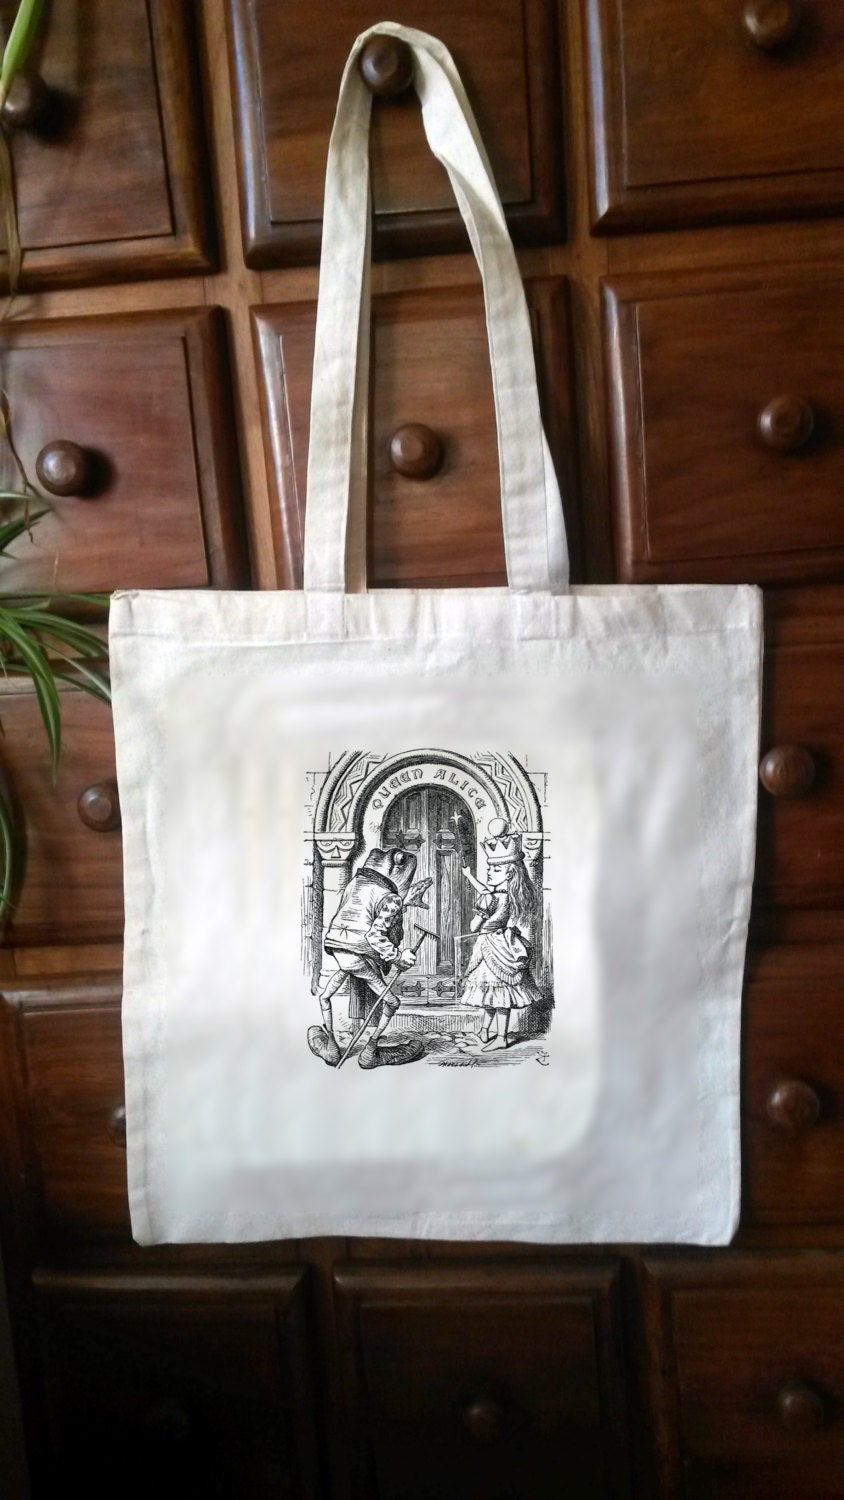 One CreamWhite Cotton Tote with an original illustration taken from the first edition of CS Lewiss Alice in Wonderland (Bag08)